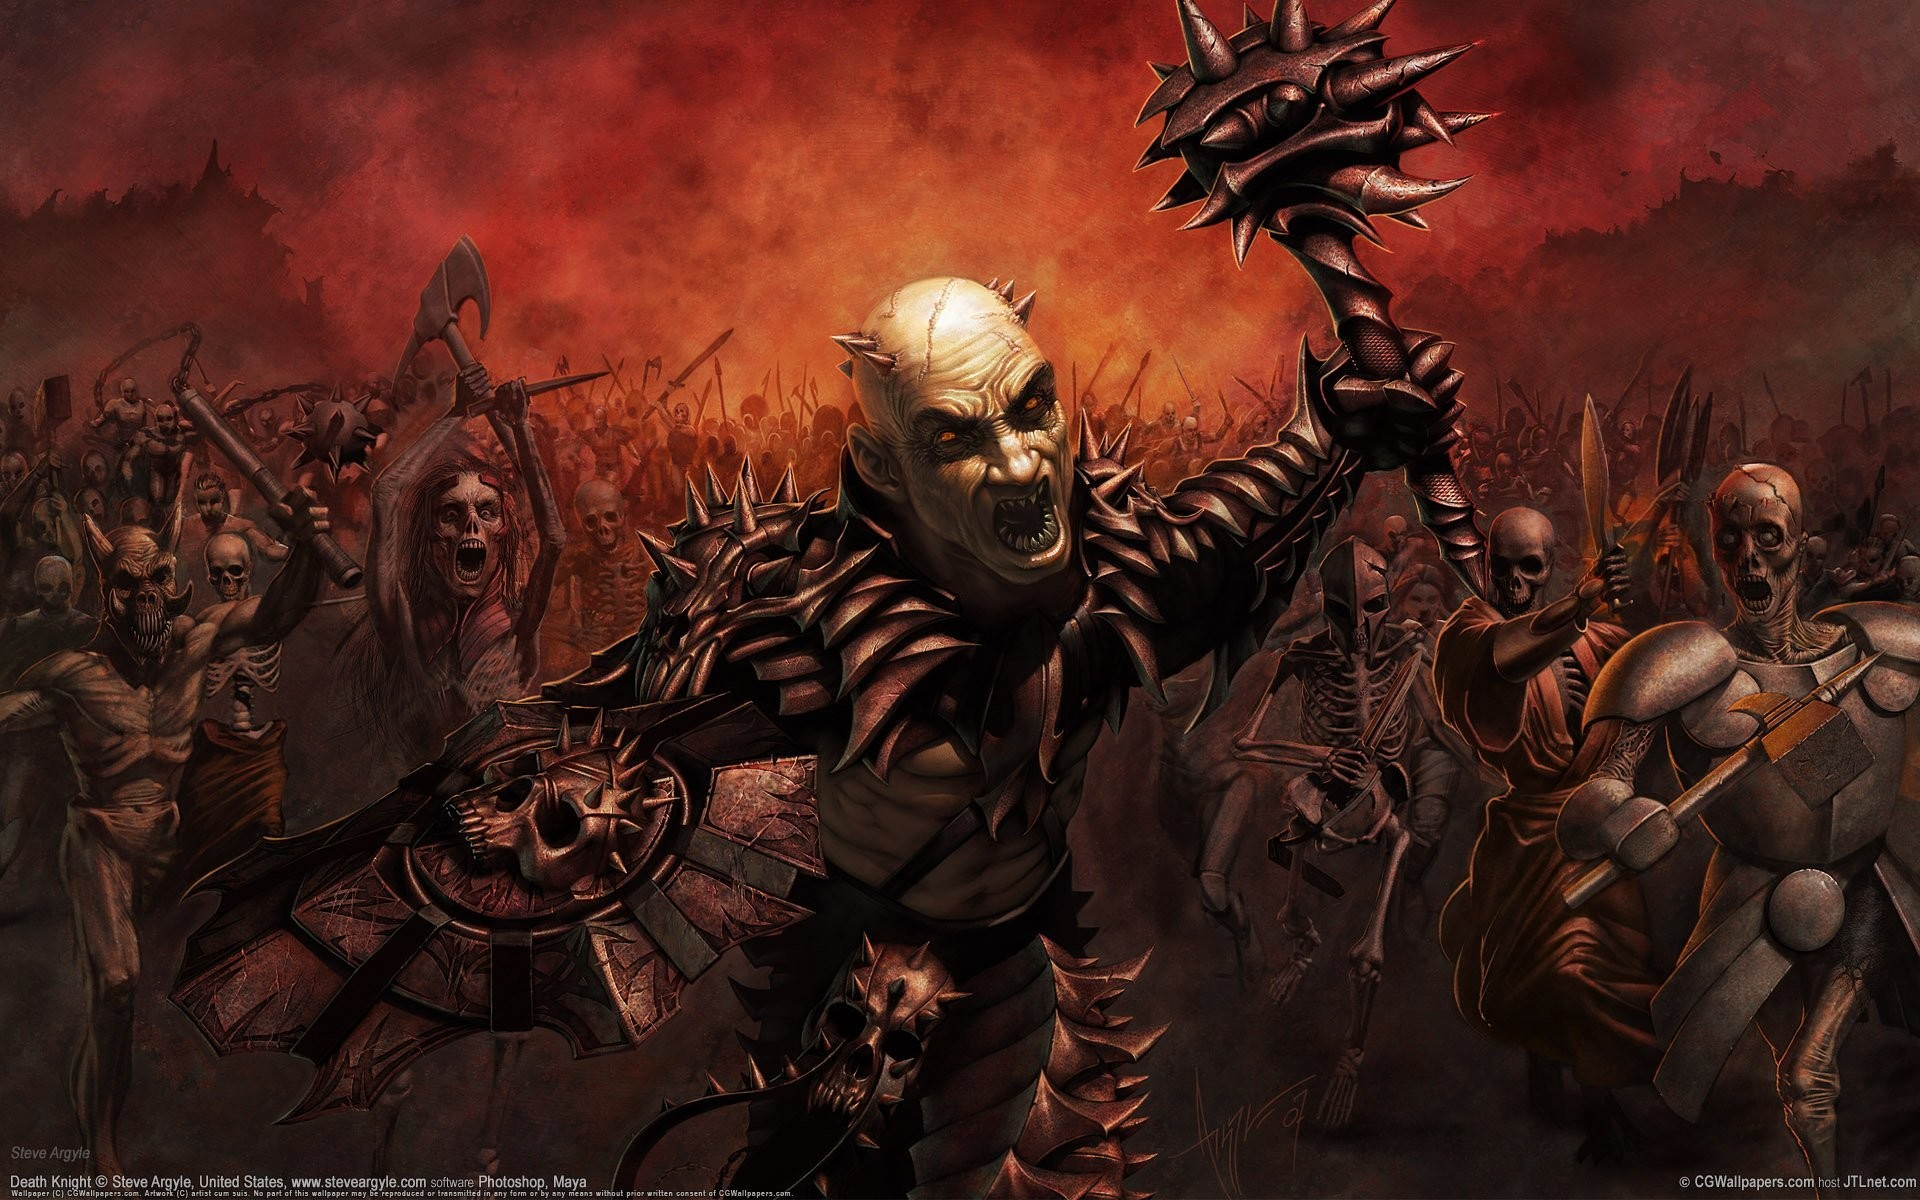 death knight the army daemons death knight steve argyle cg wallpapers